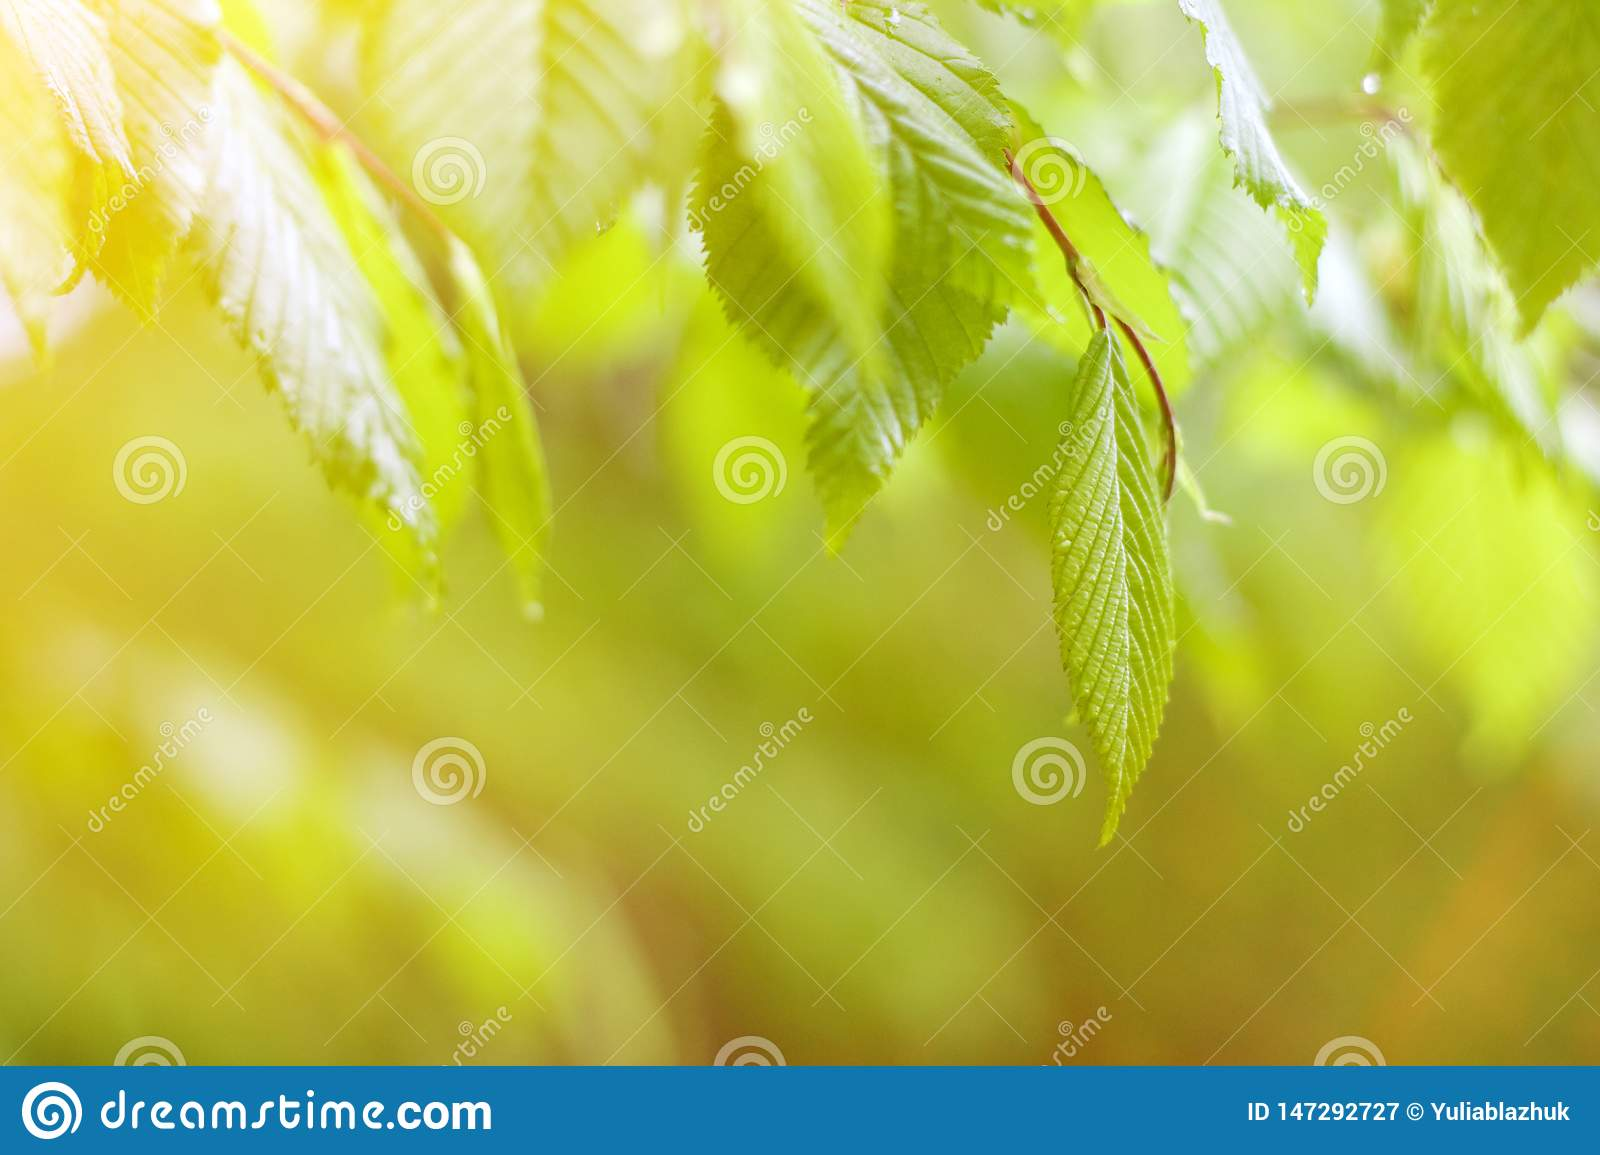 Green fresh leaves background in sunny day